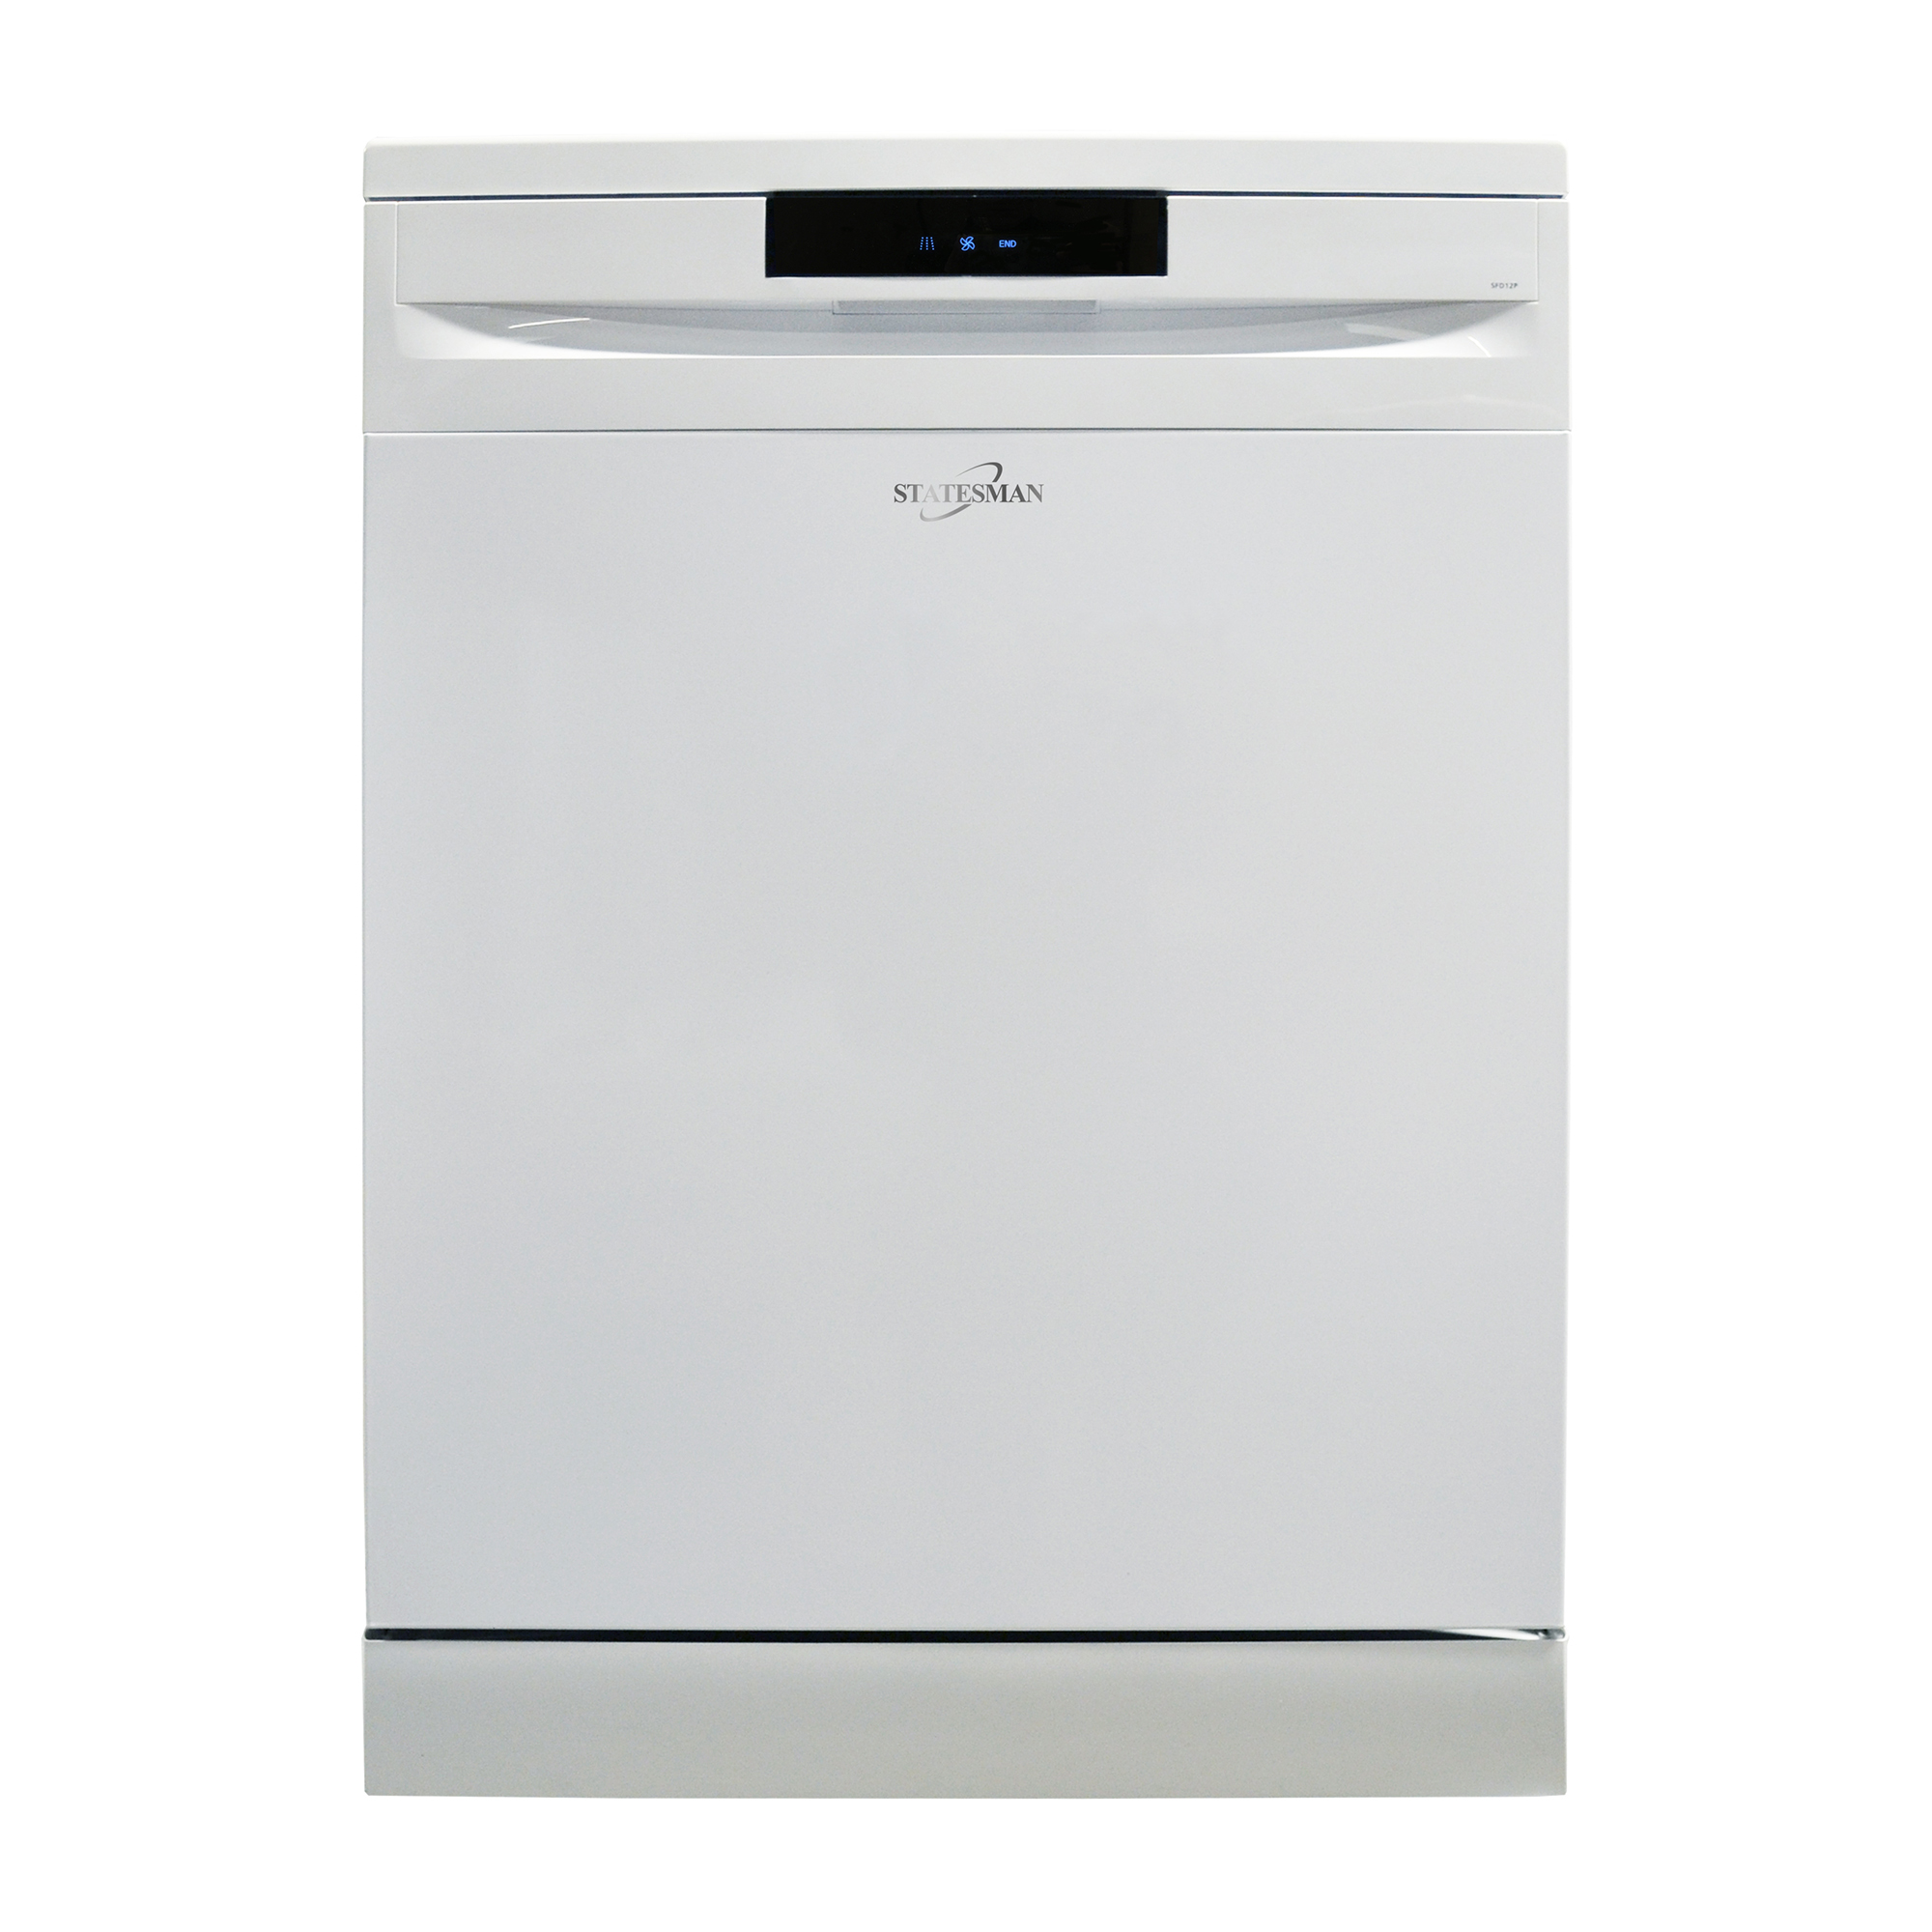 Statesman Dishwasher A+ Rating Flood Protection 60cm White Ref SFD12P